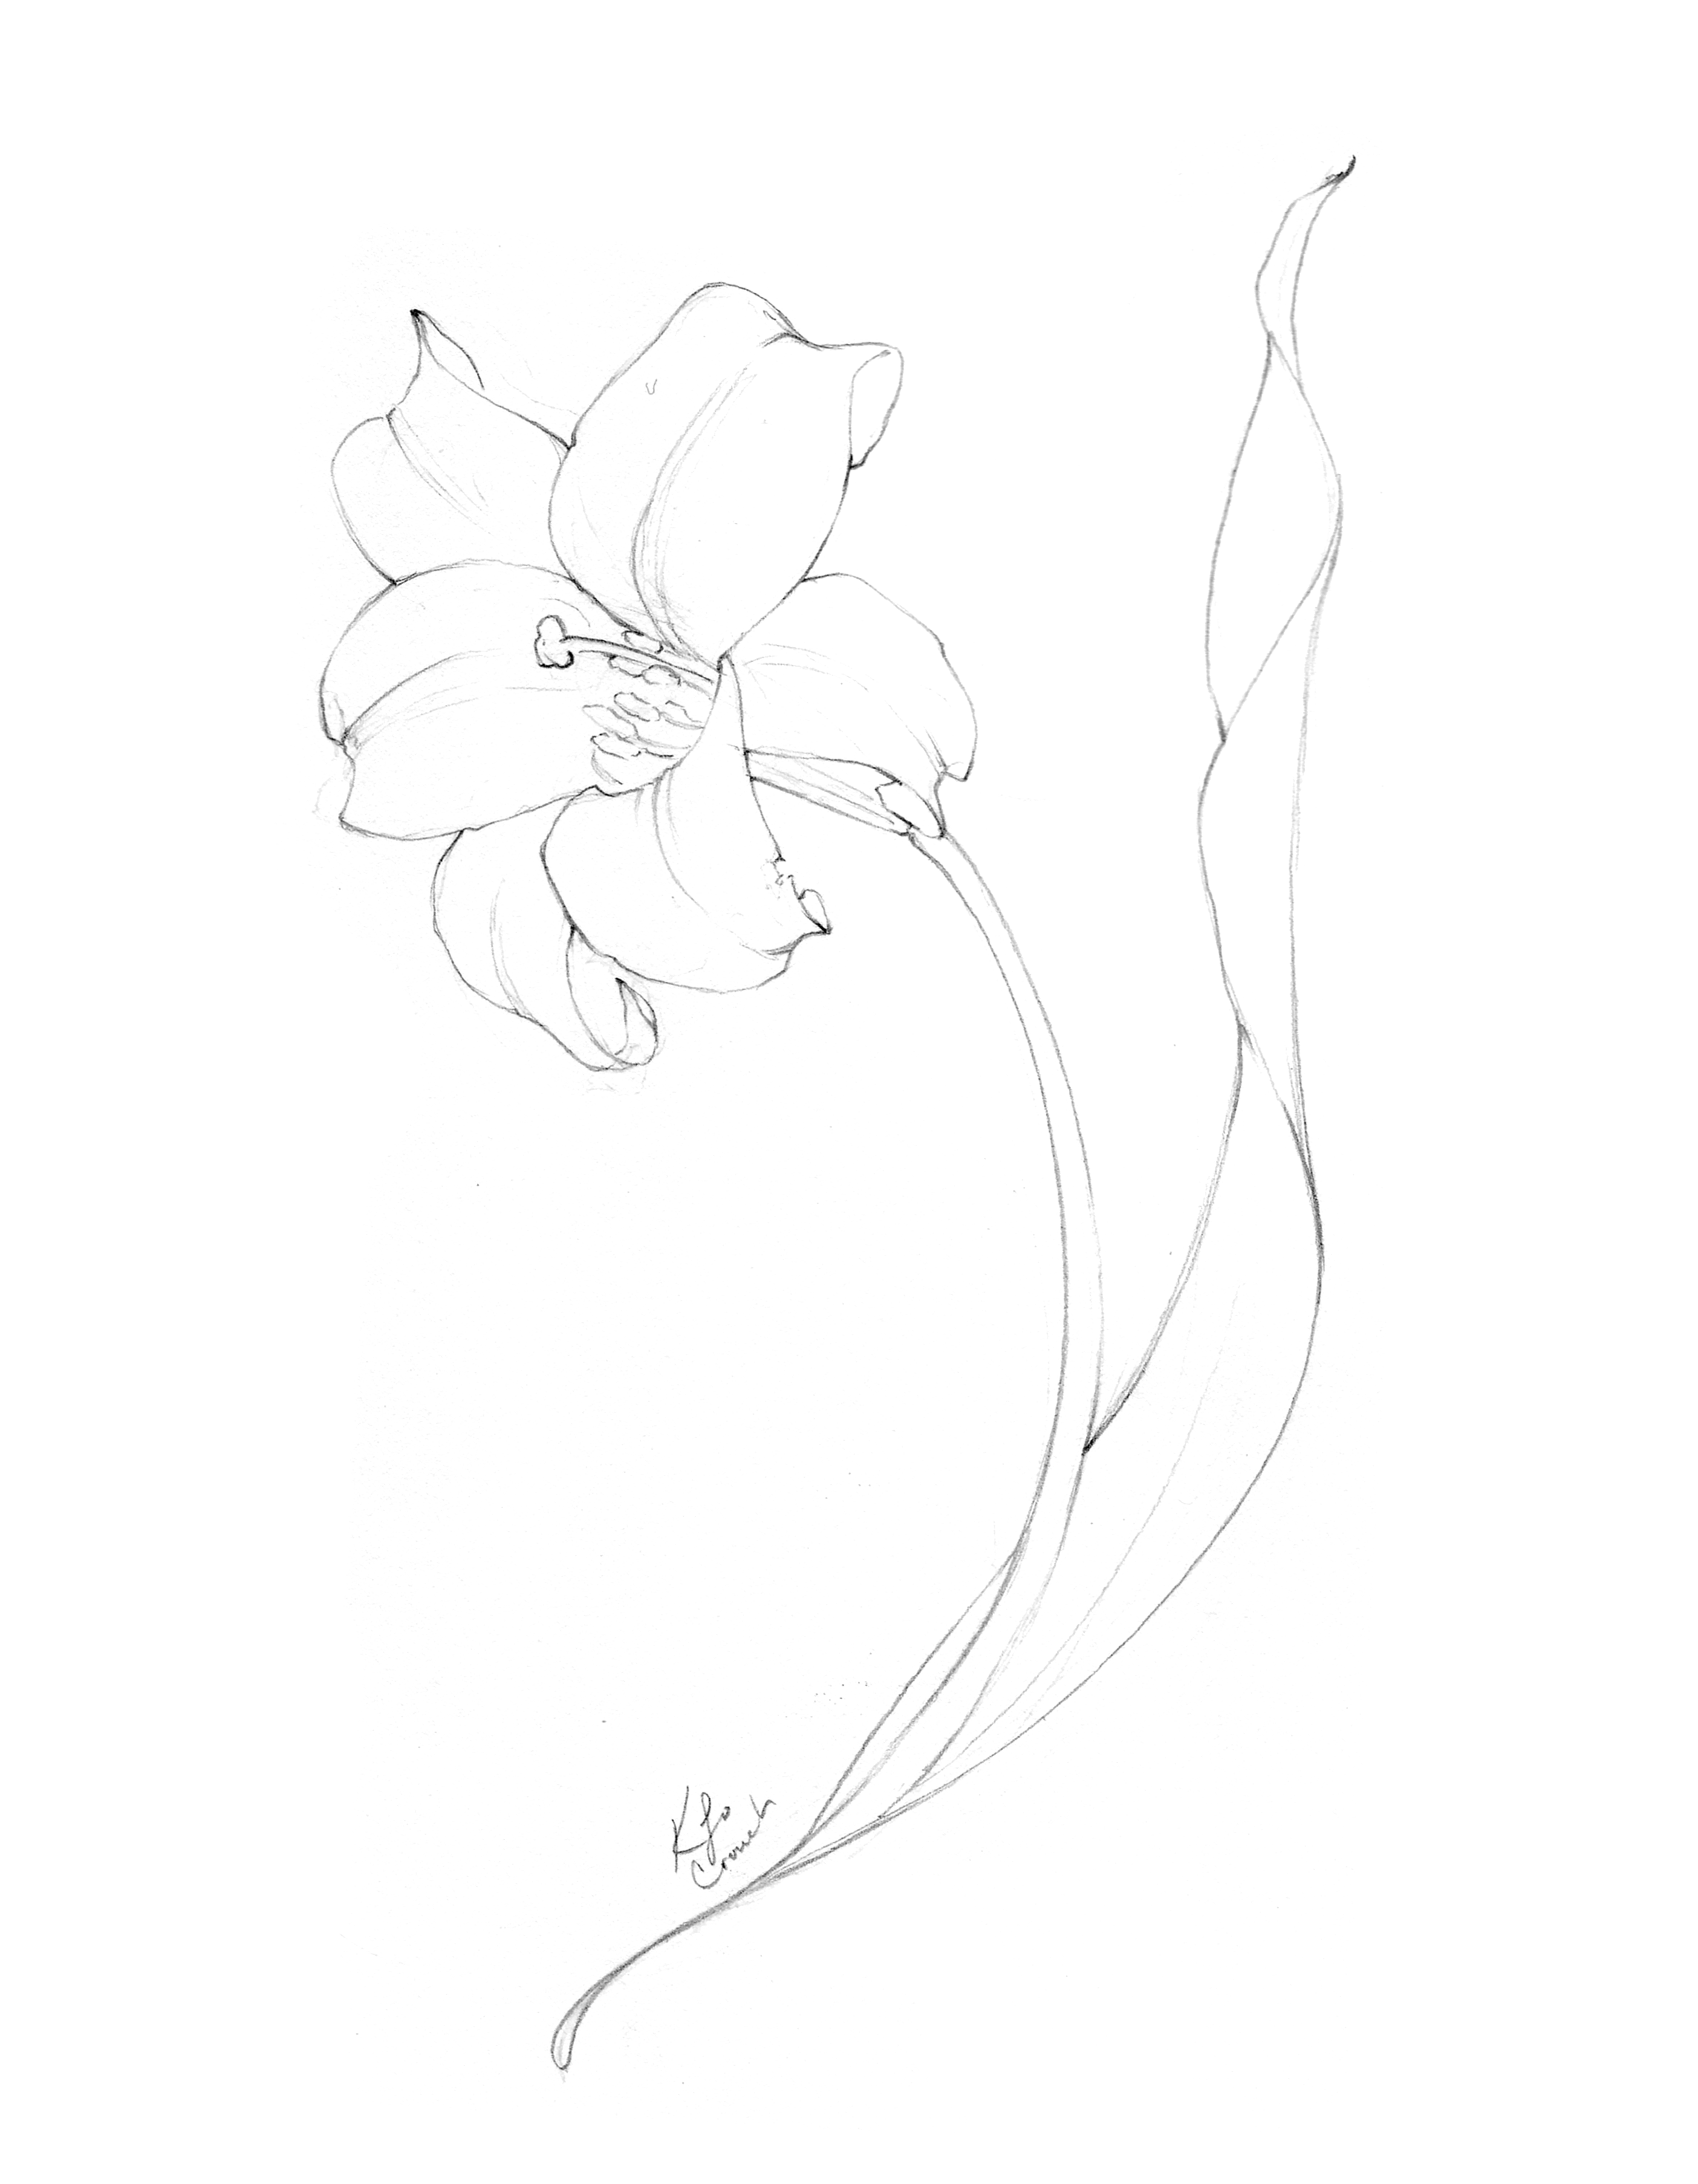 Flower drawing of graceful, dancing lily by Katrina of Blushed Design.  This blog post reveals a collection of botanical illustrations and flower drawings from the annual inktober challenge. #inktober #flowerdrawings #botnaicalillustrations #blushedbotanicals www.blusheddesign.com